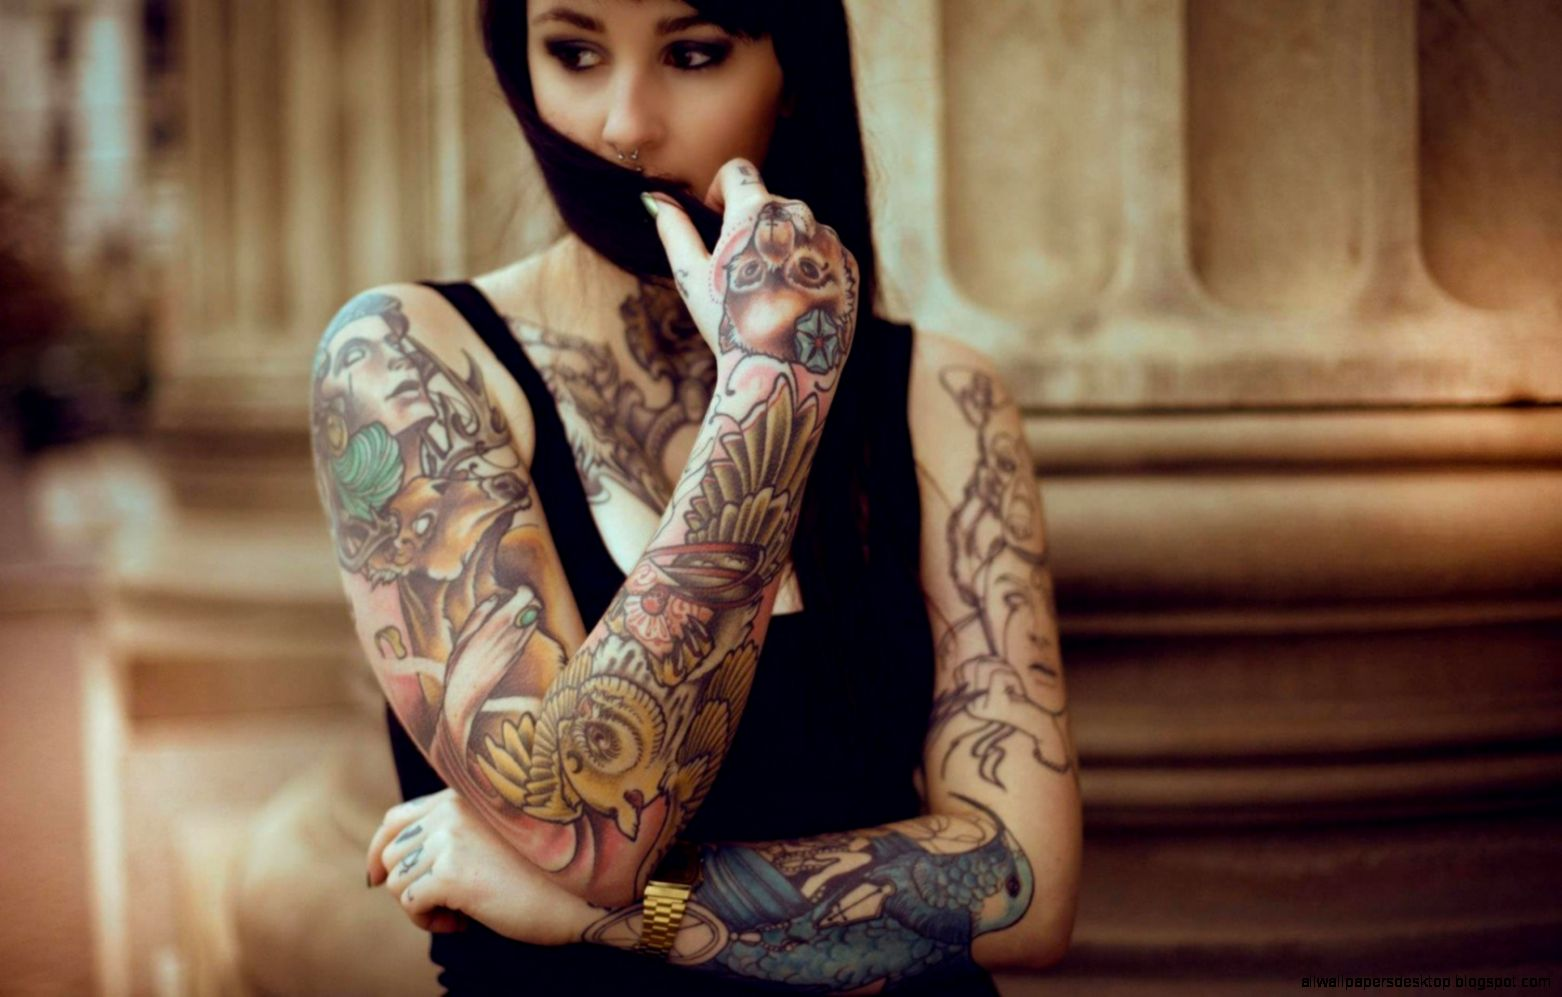 Brunette Girl Tattoos Gloves Photo 7028994